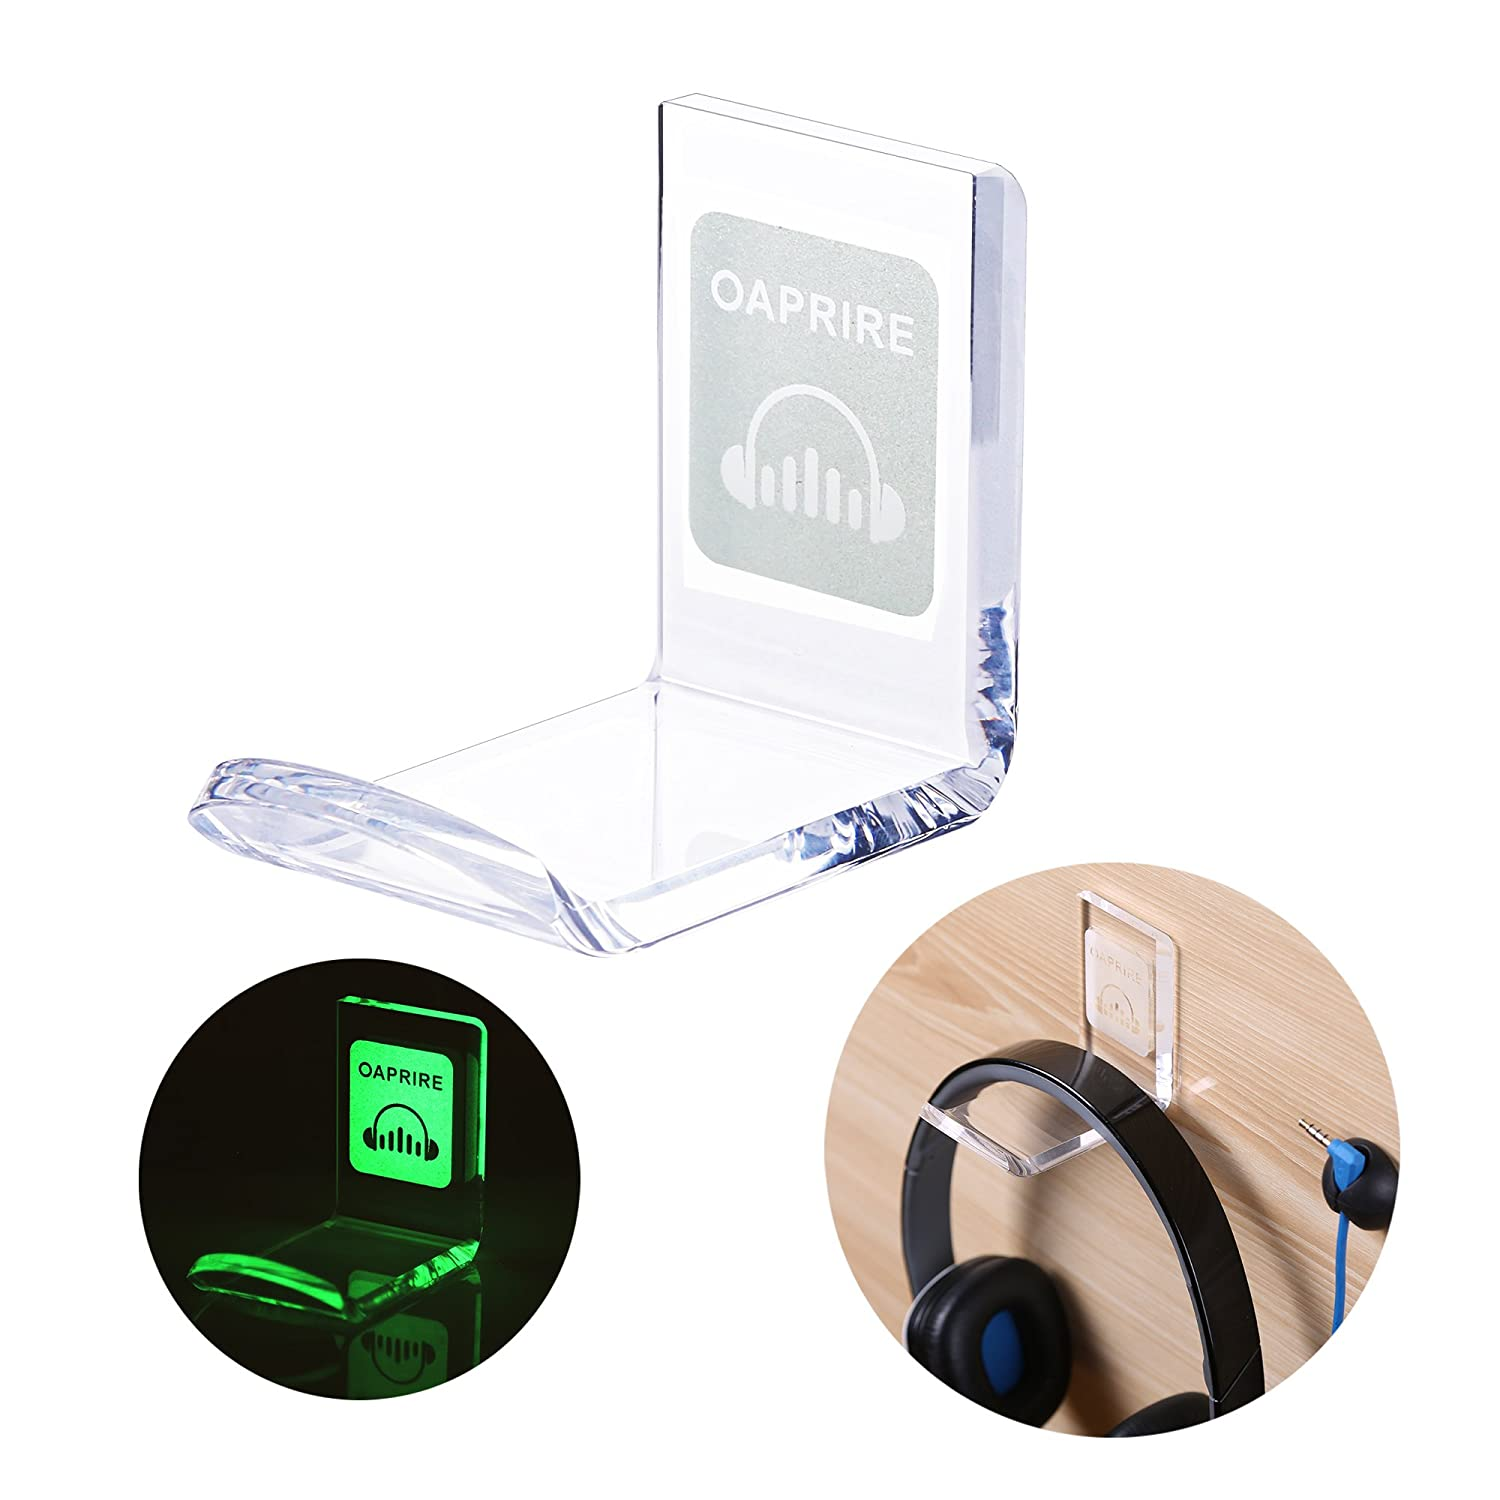 OAPRIRE Luminous Headphone Stand Hook Wall Mount with Cable Clips - 2 Pack